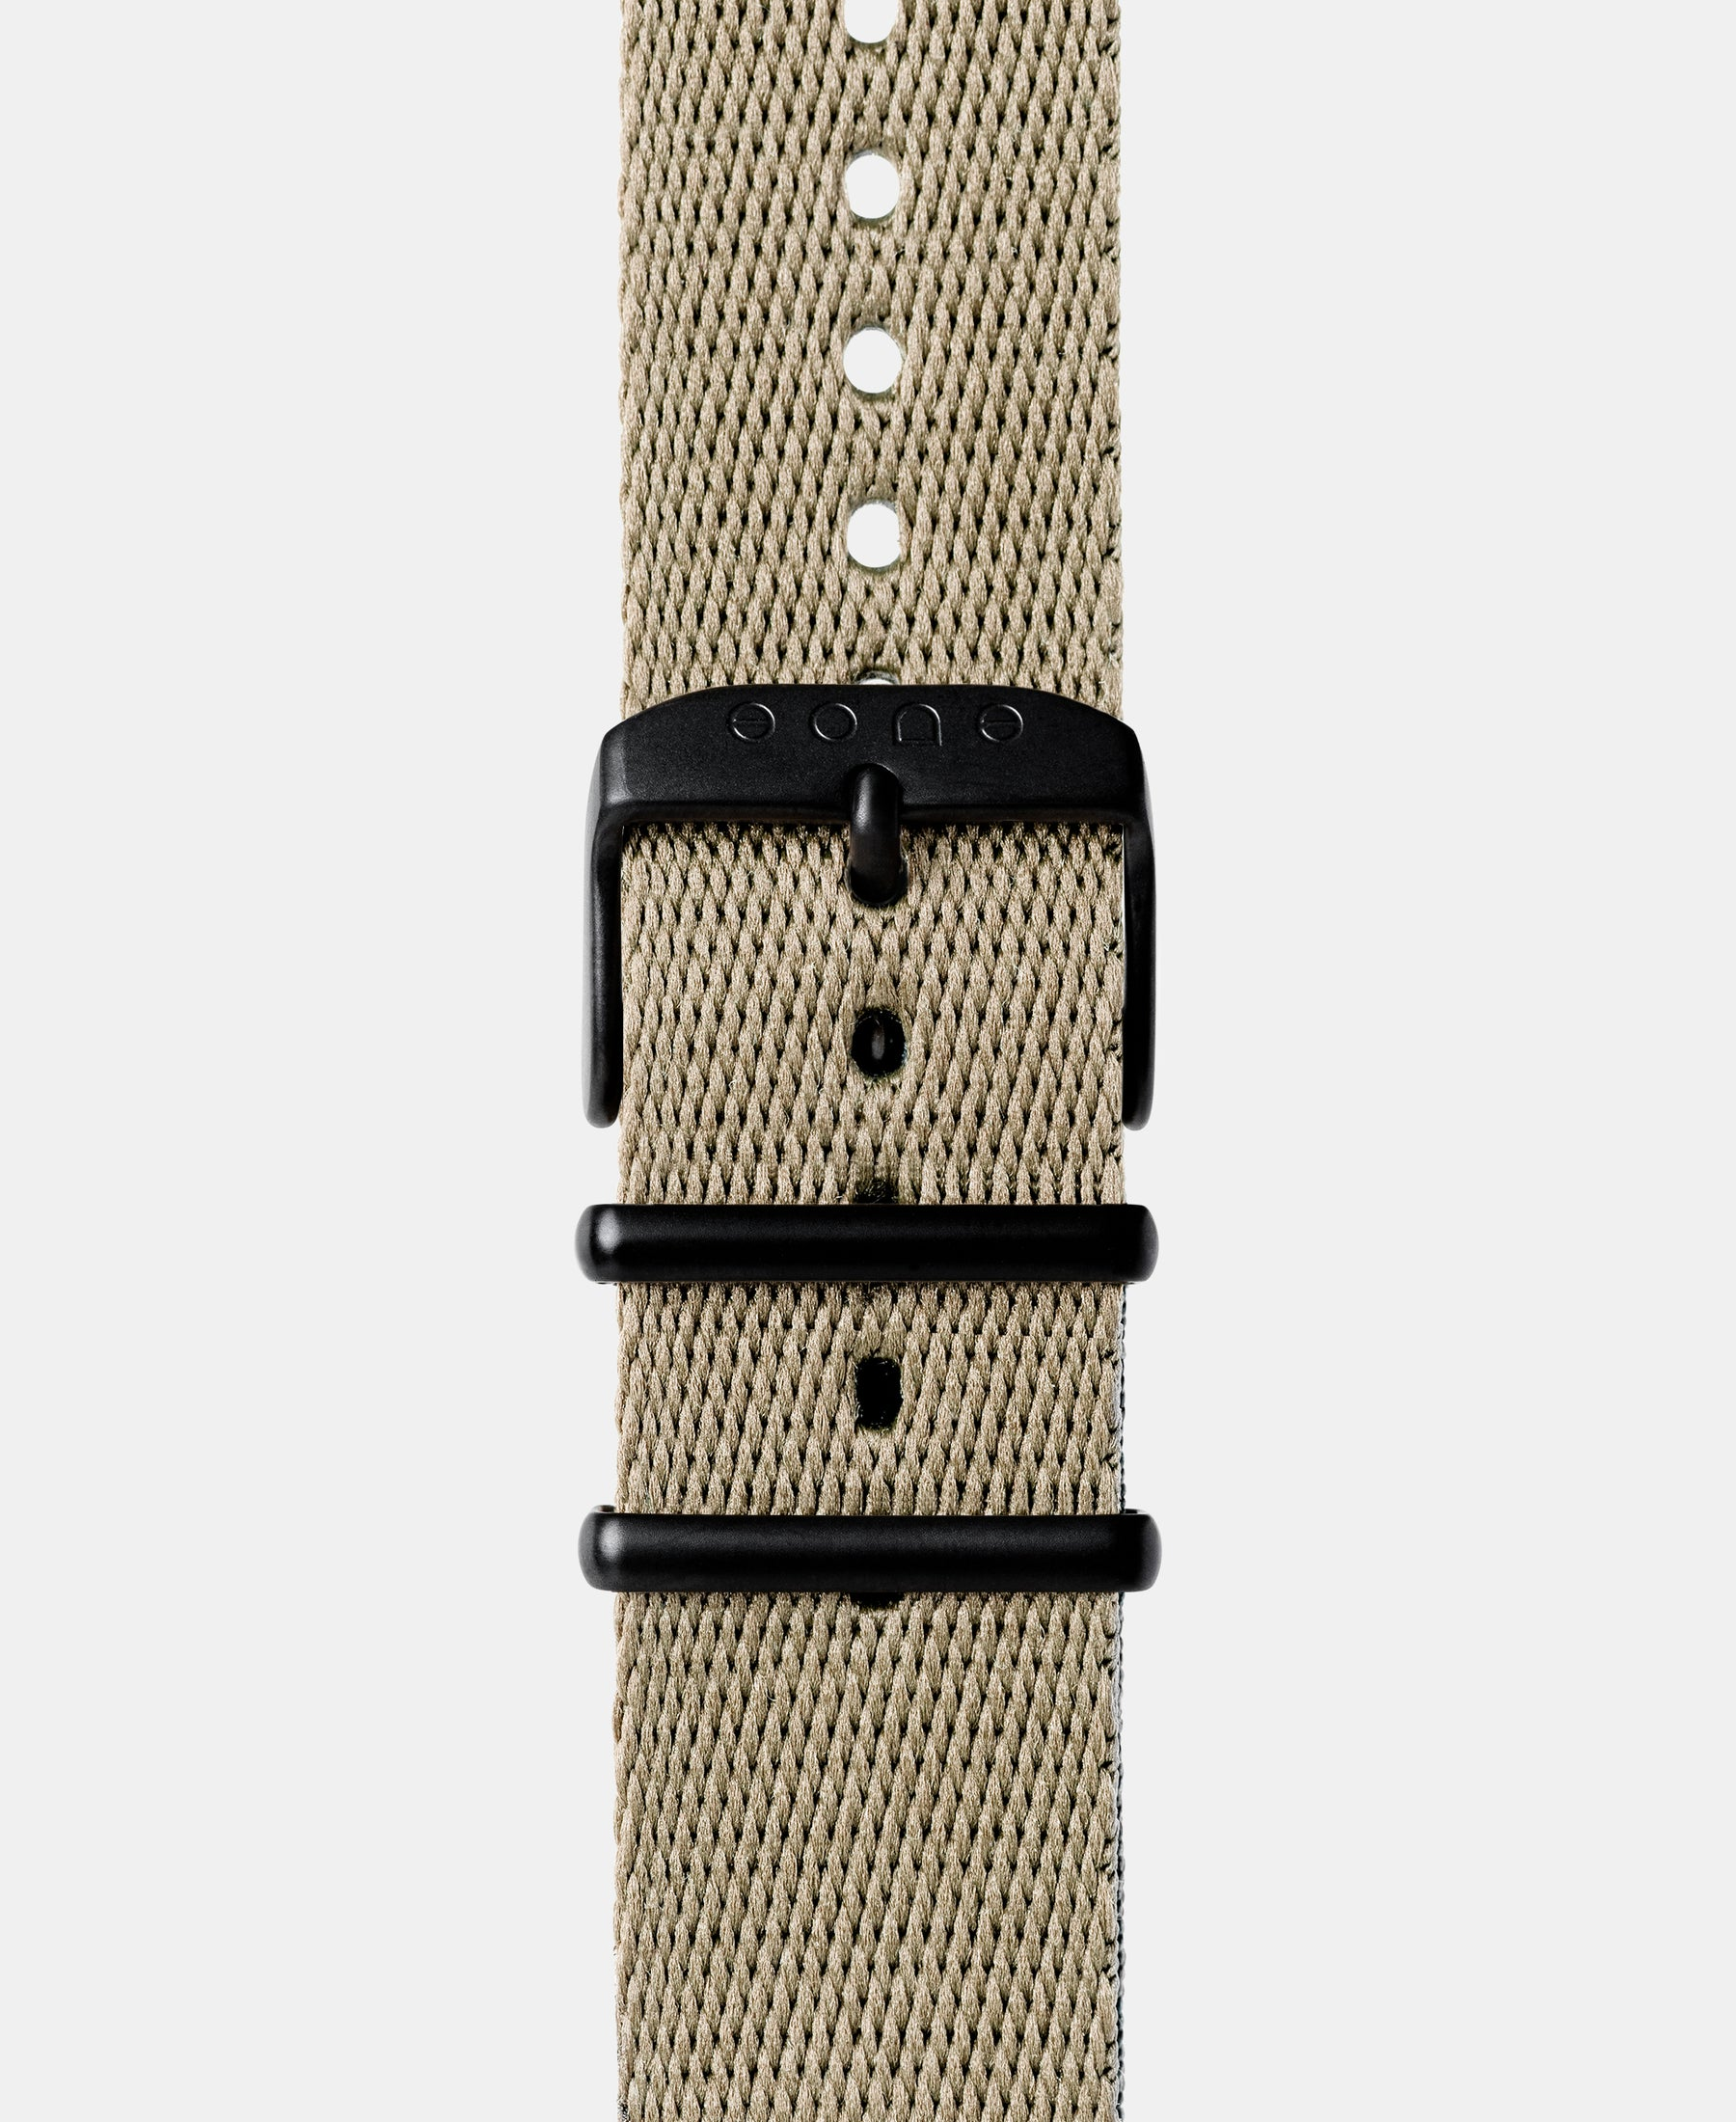 Load image into Gallery viewer, A photo shows the strap lying on a flat surface. One part has a buckle and the other part has a series of holes for an adjustable fit.